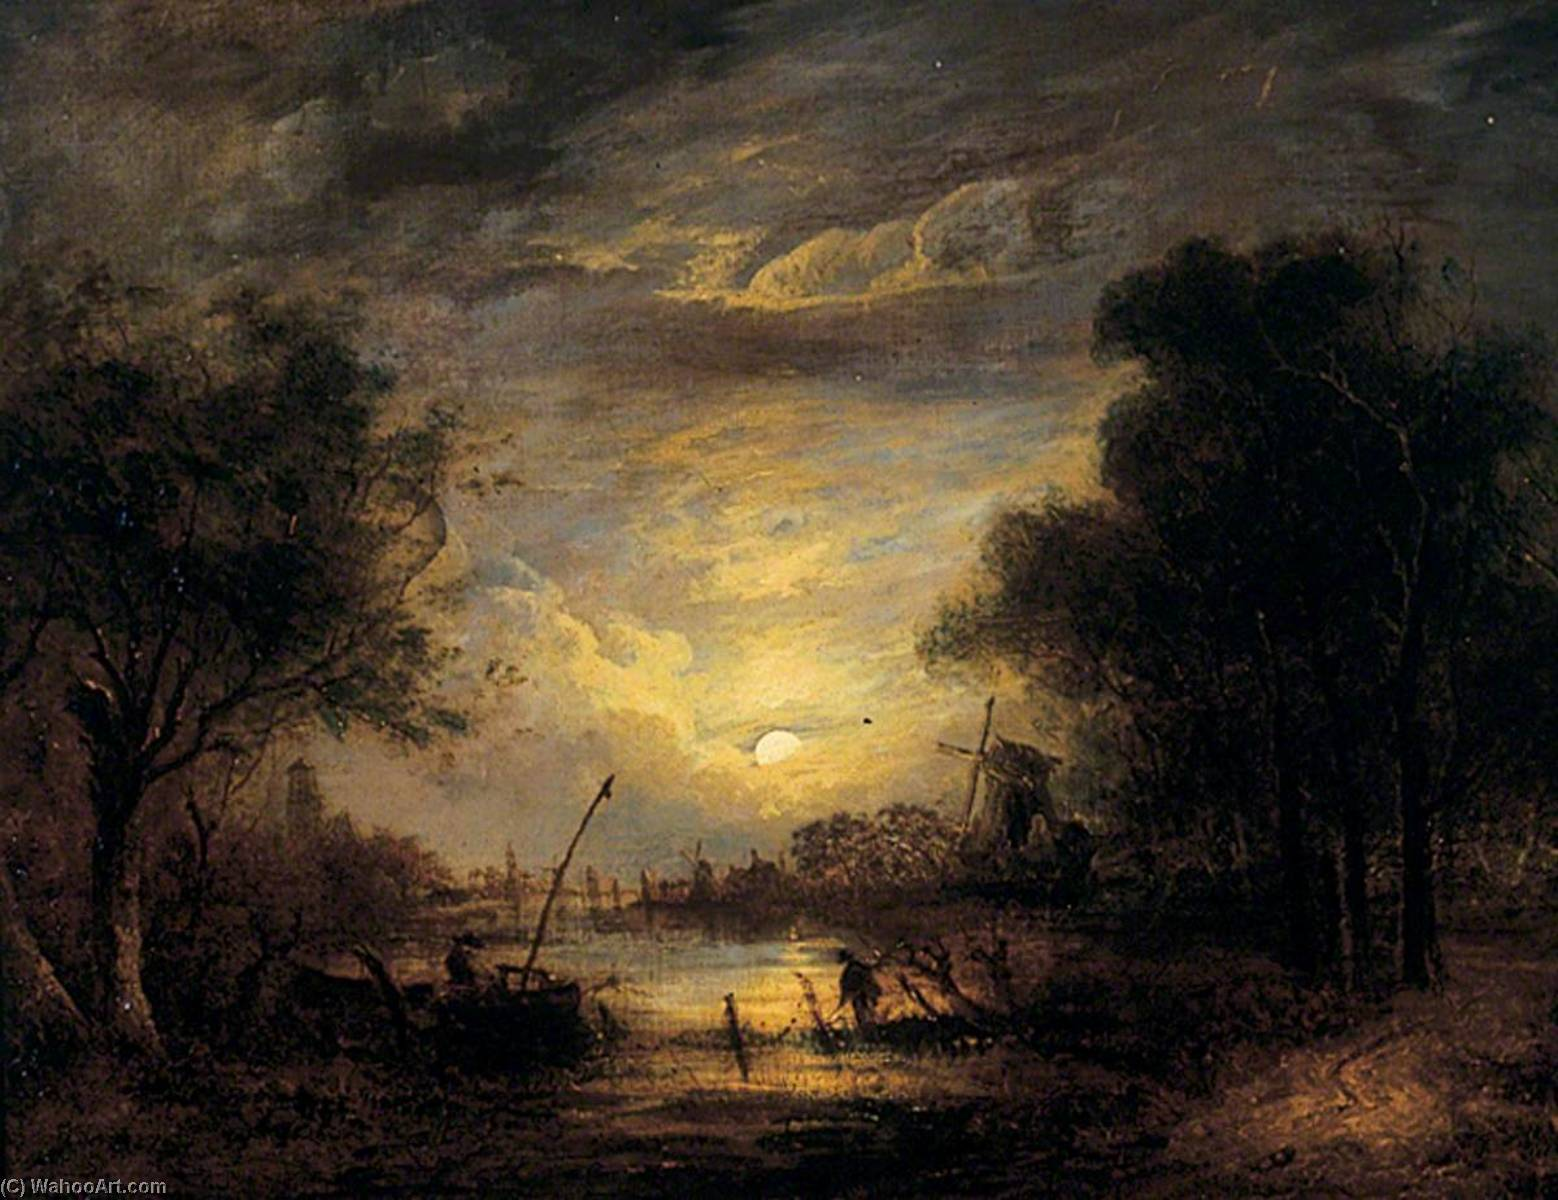 Fishing by Moonlight at Sanderdorf, near the Brille, The Netherlands, 1840 by John Berney Crome (1768-1821) | Famous Paintings Reproductions | WahooArt.com